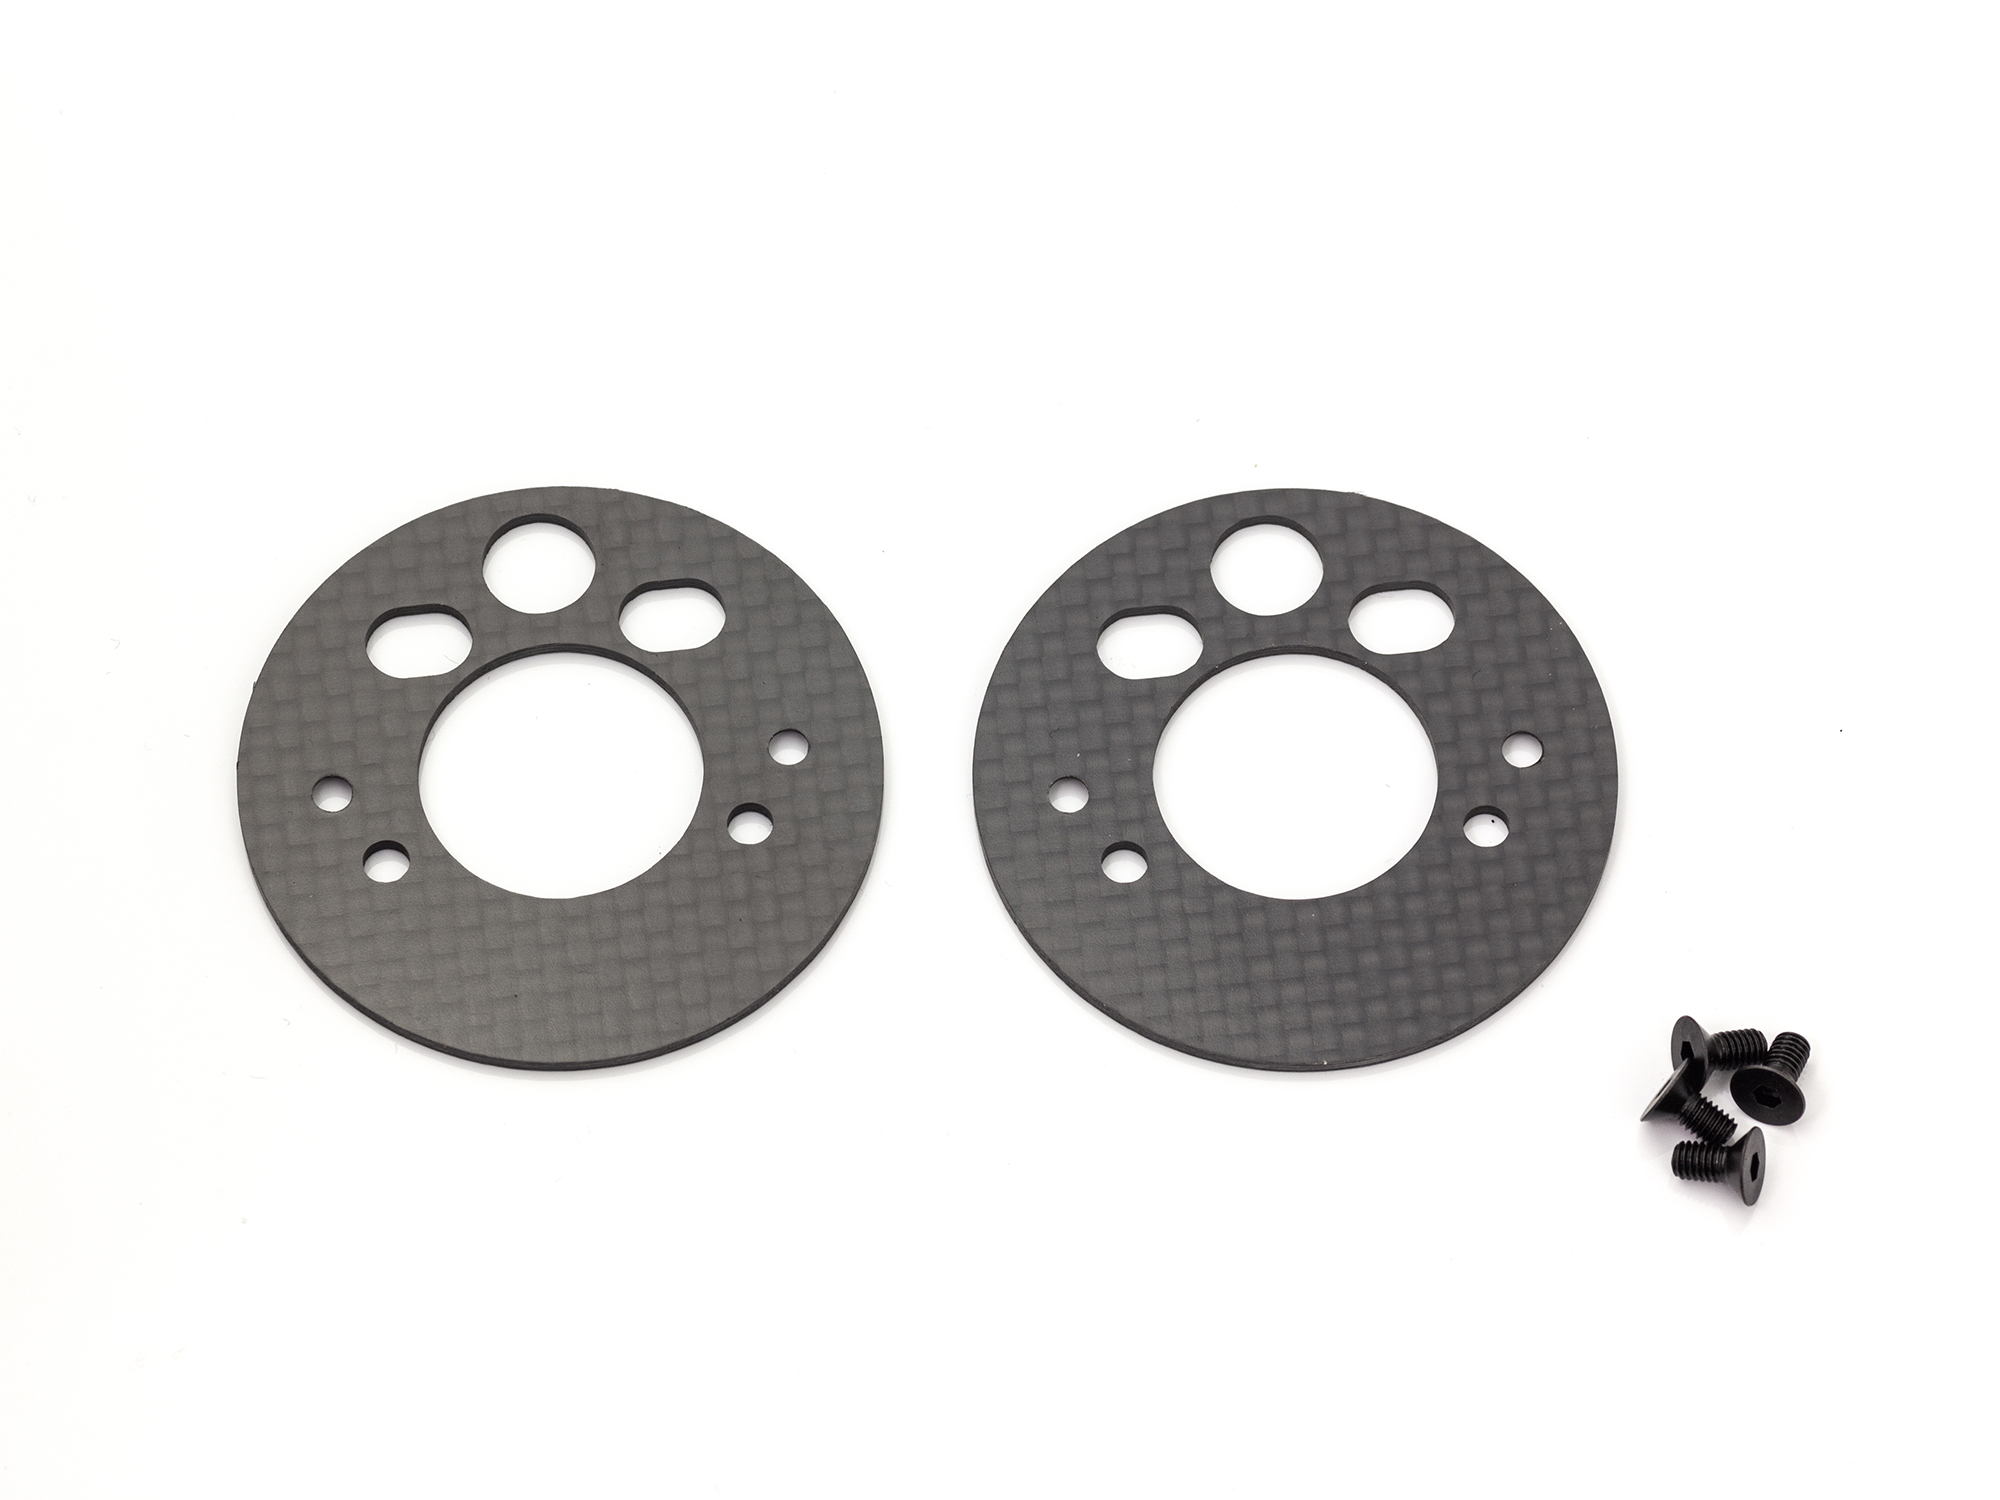 [R0311] FRONT CARBON WHEEL PLATE(IF18-2)